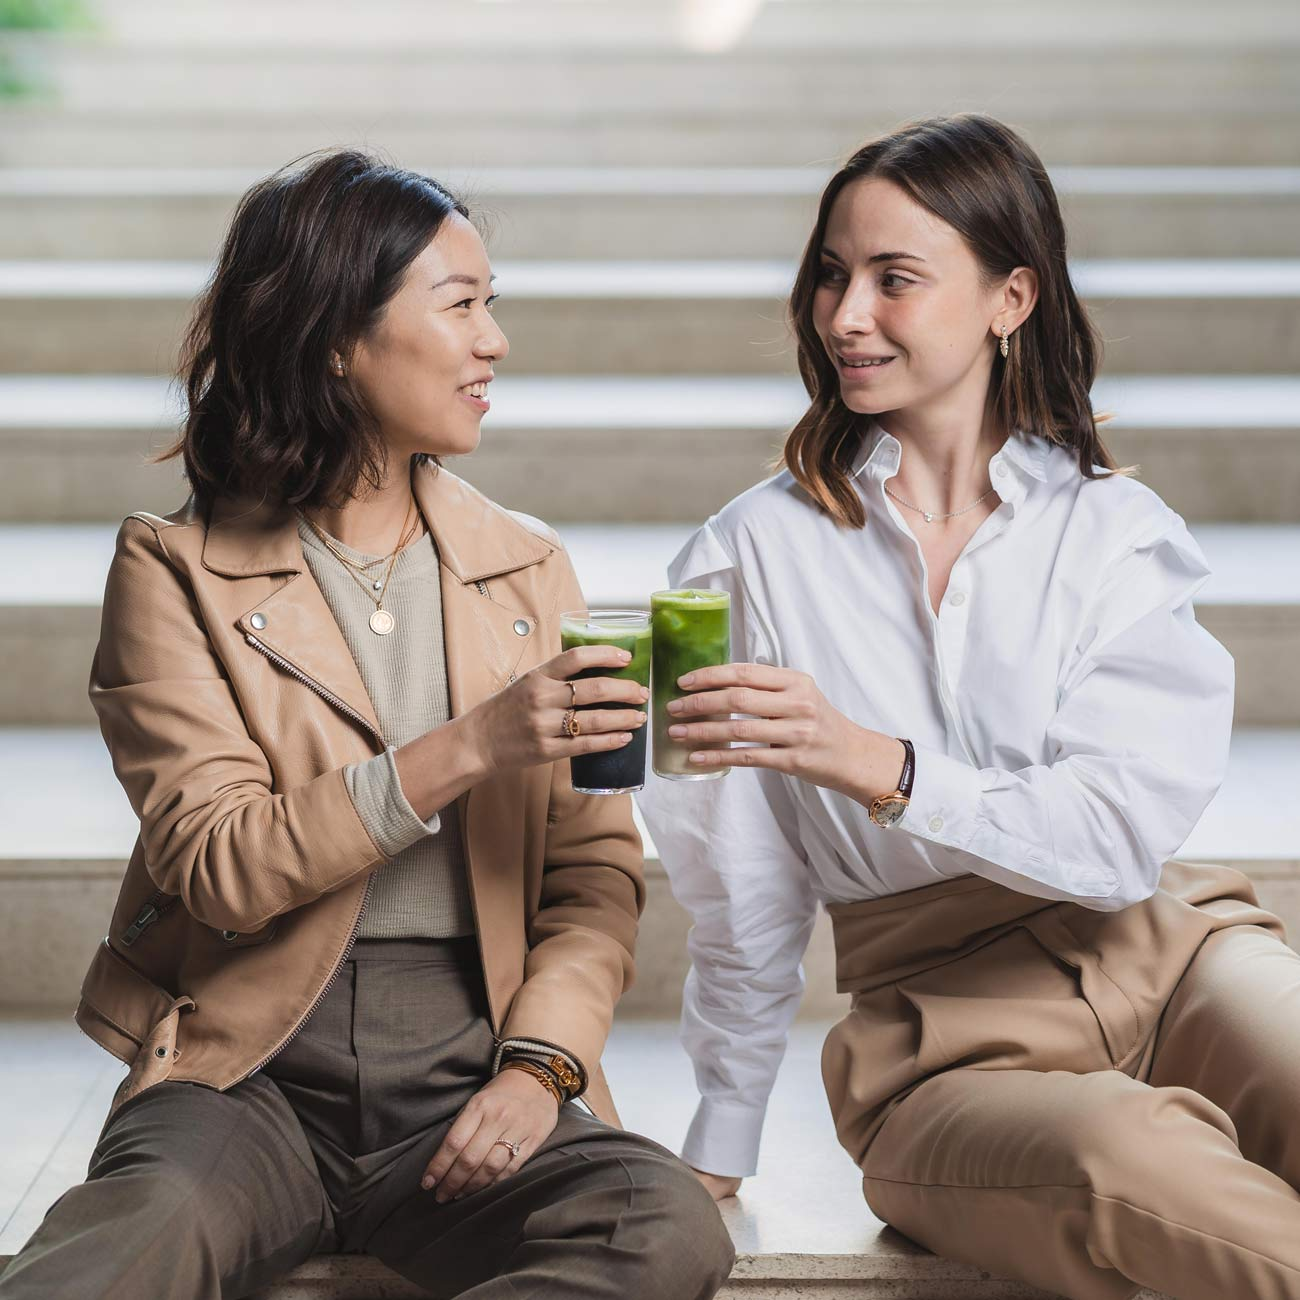 Matchali founders Cara and Laura Li